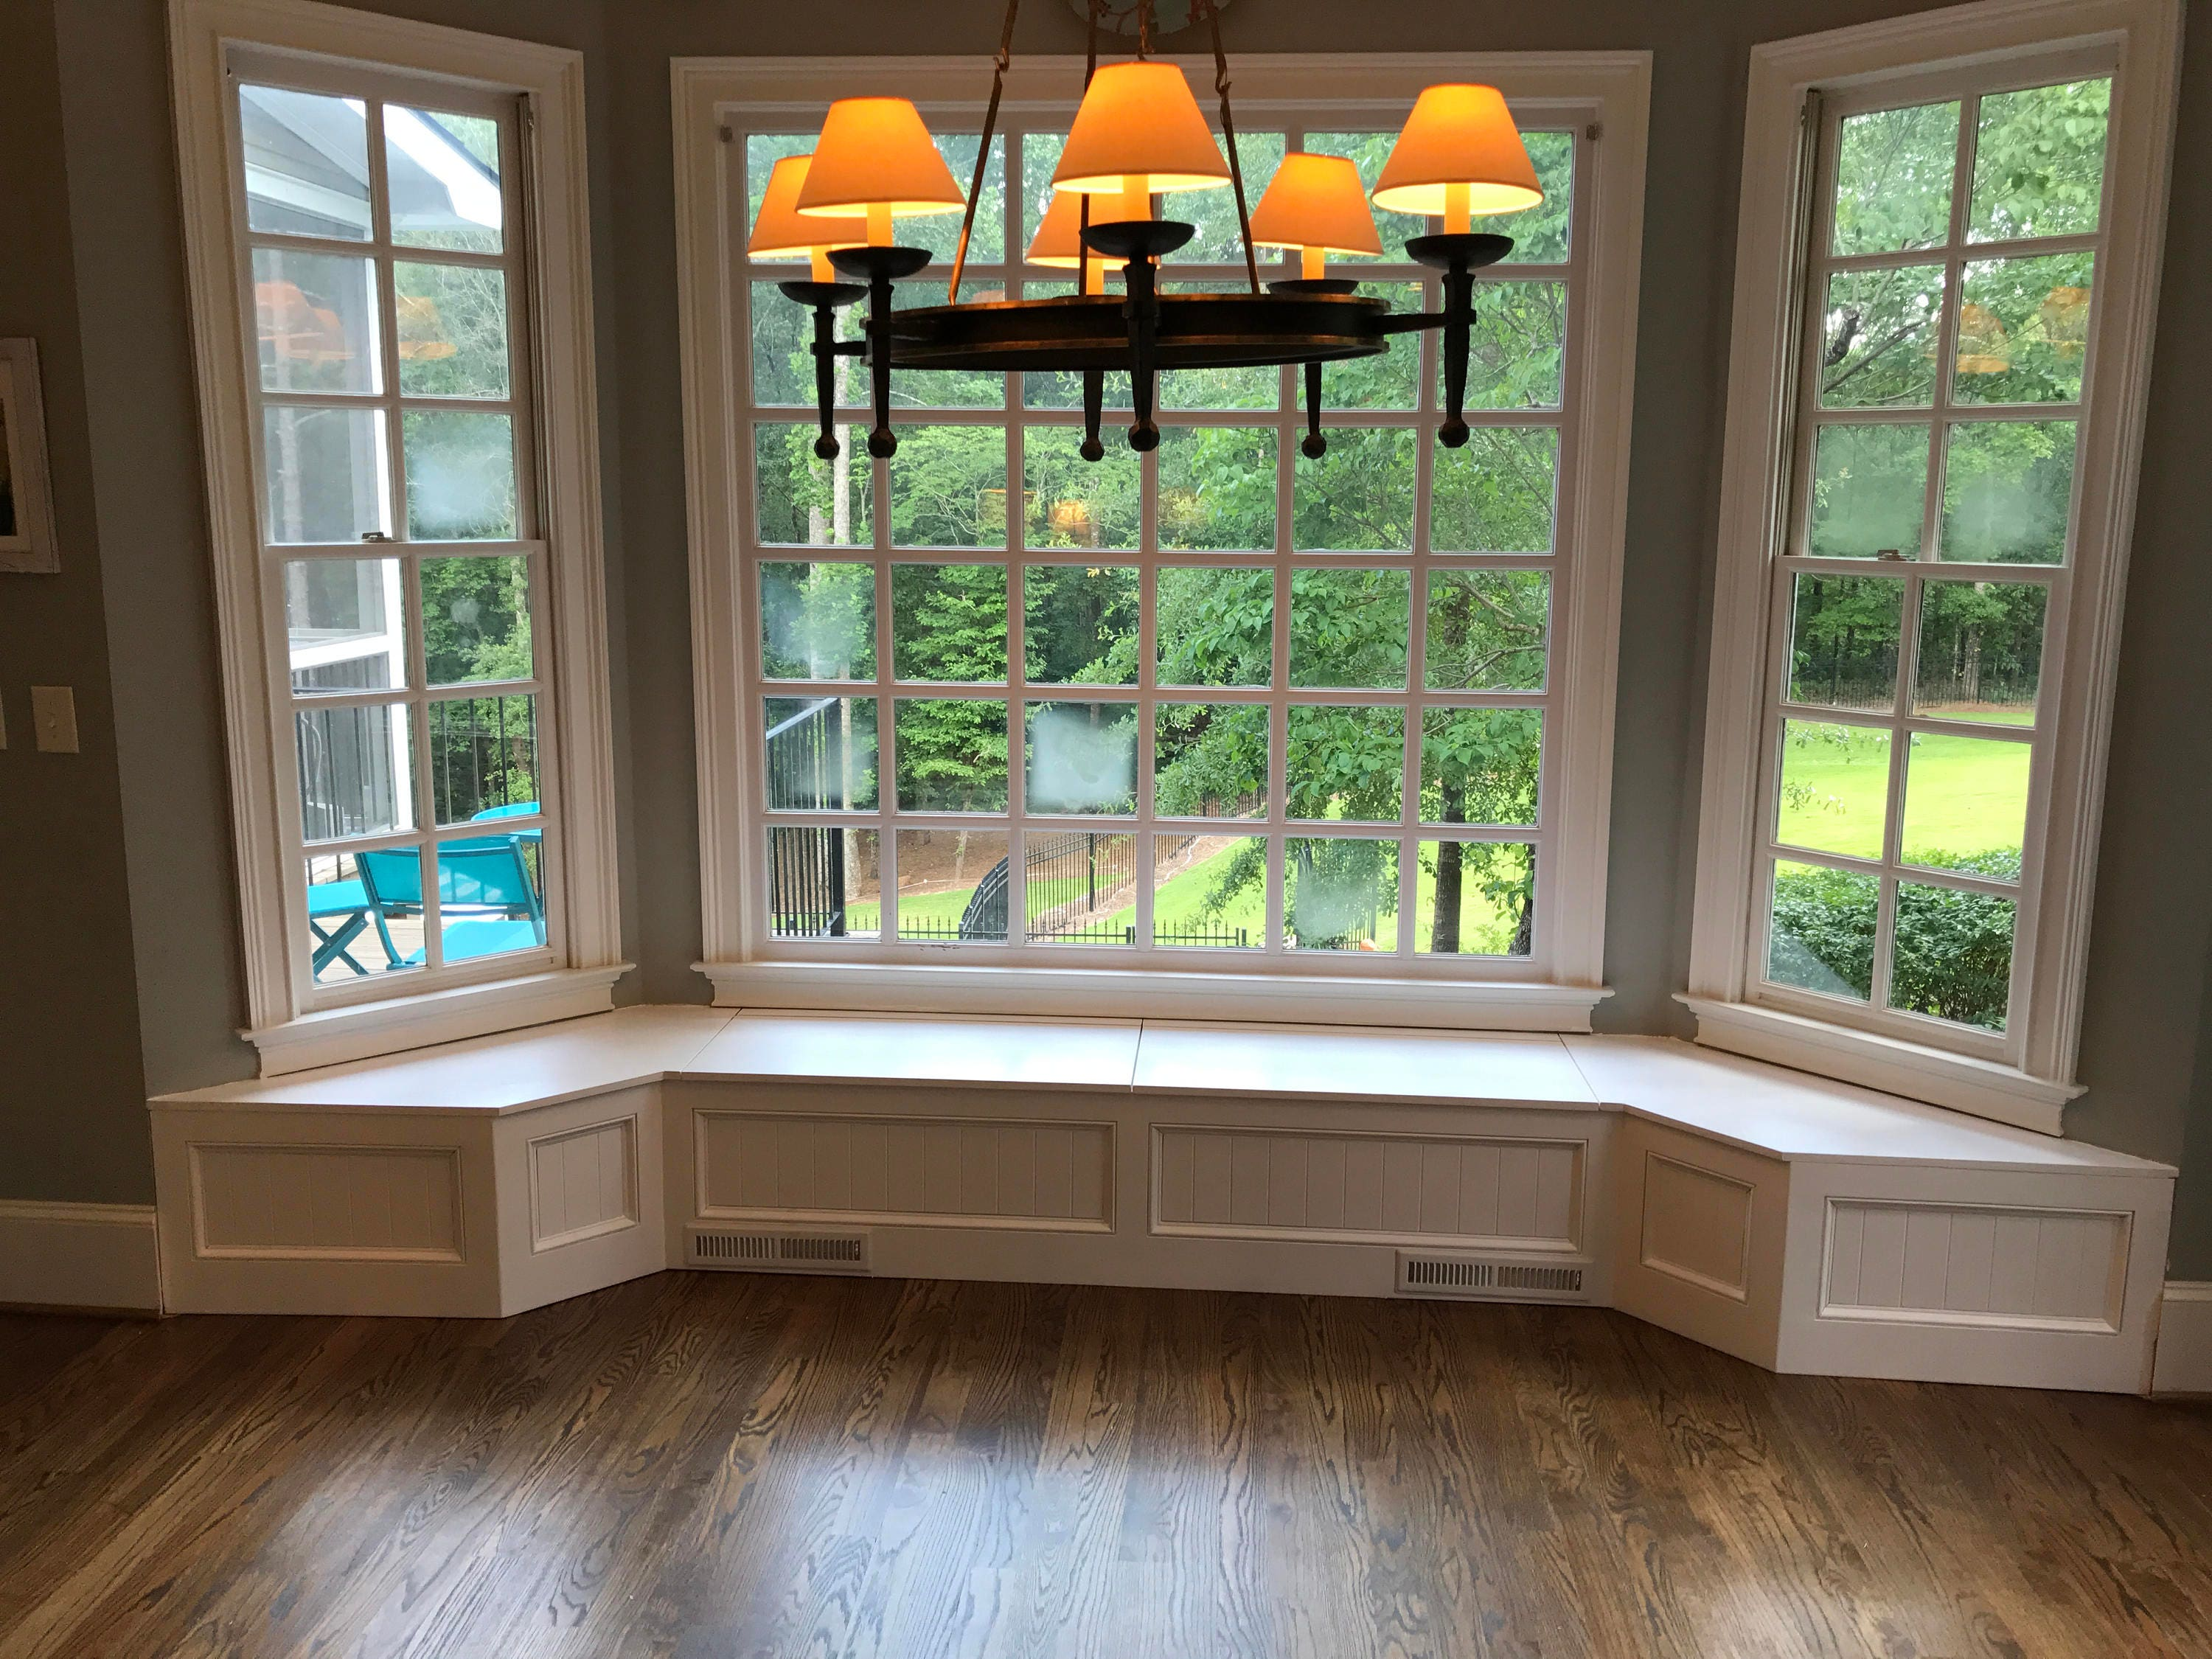 Banquette Bench For A Bay Window Kitchen Seating Shaped Bench - Bay window kitchen